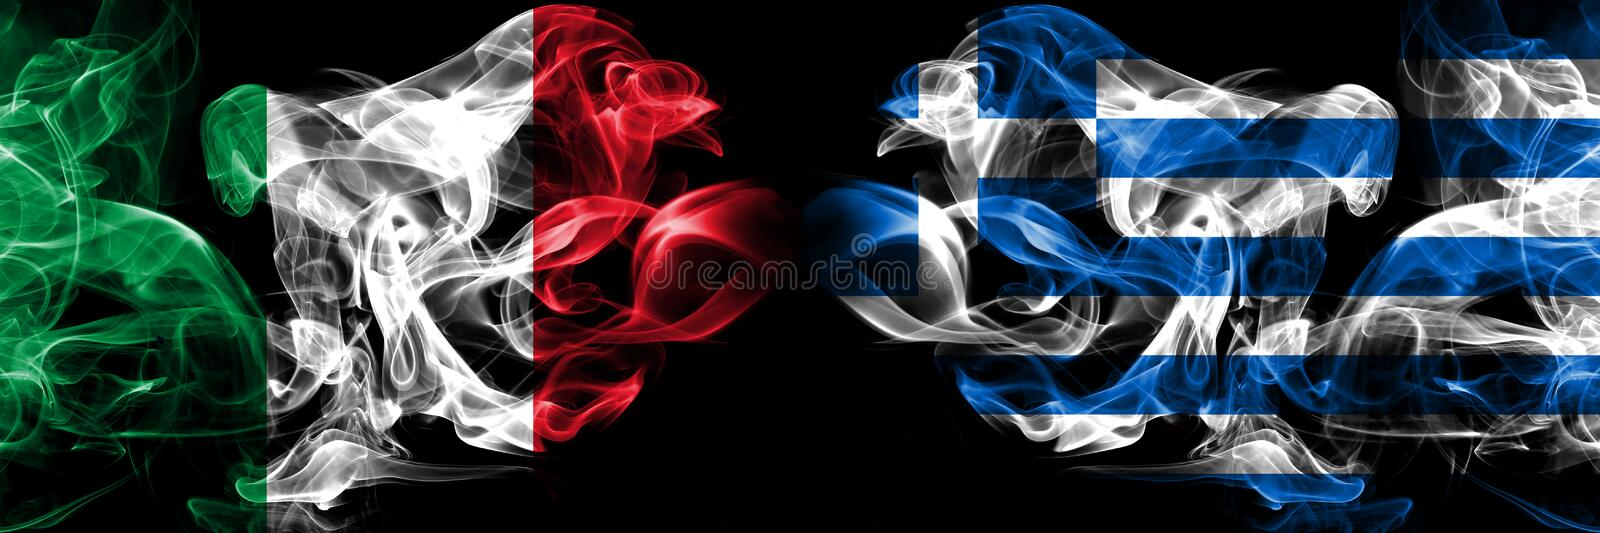 Italy, Italian, Greece, Greek competition thick colorful smoky flags. European football qualifications games royalty free illustration